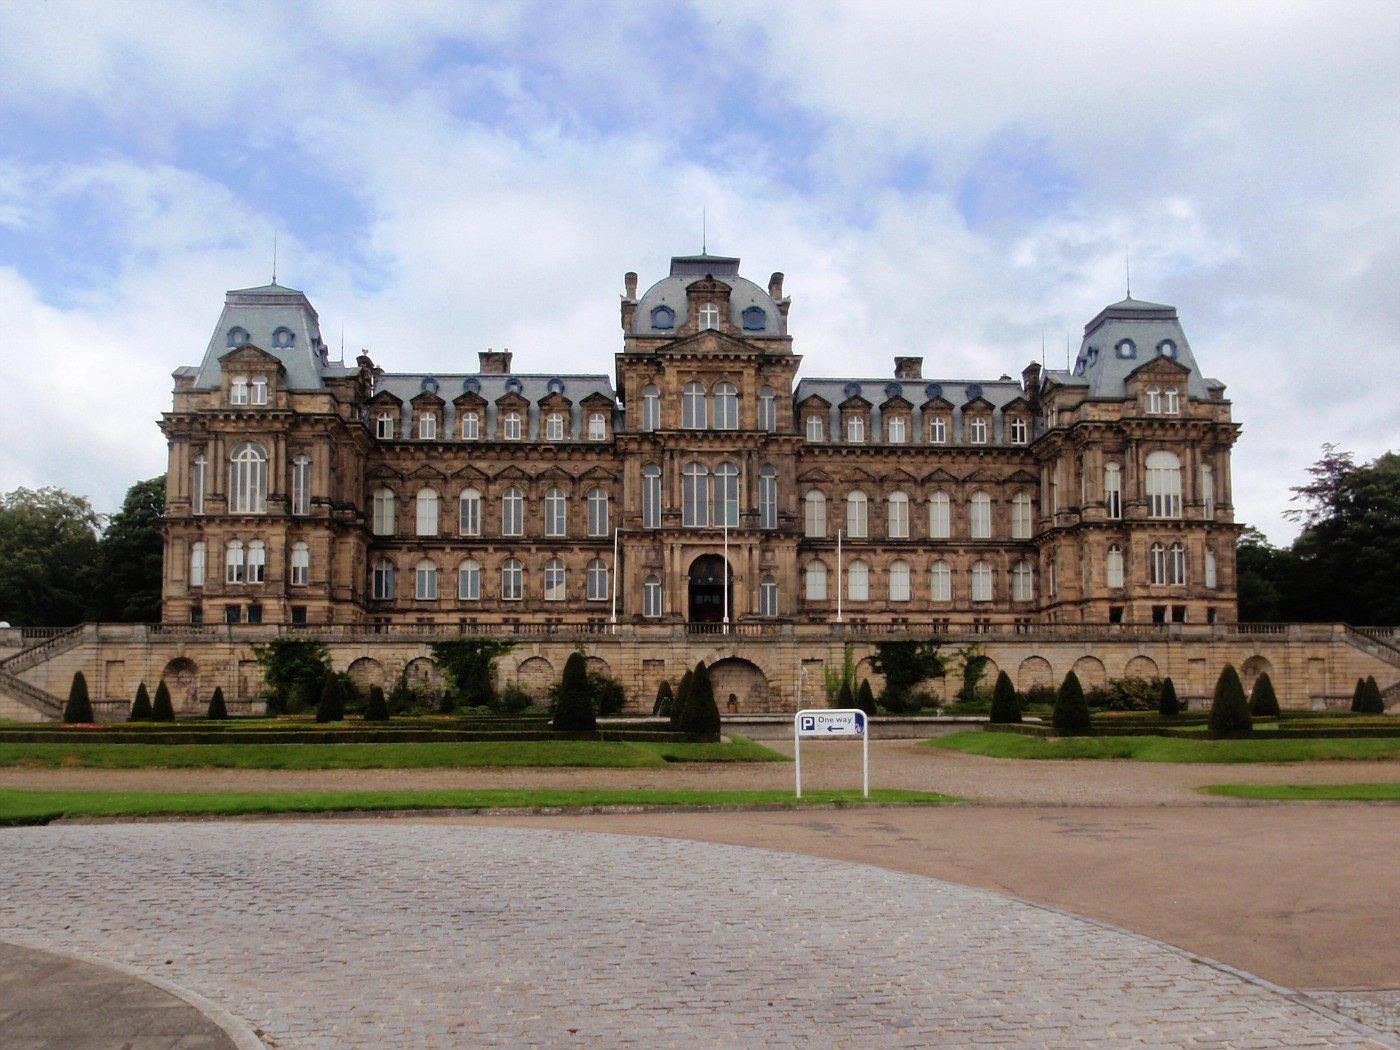 The Bowes Museum of Barnard Castle